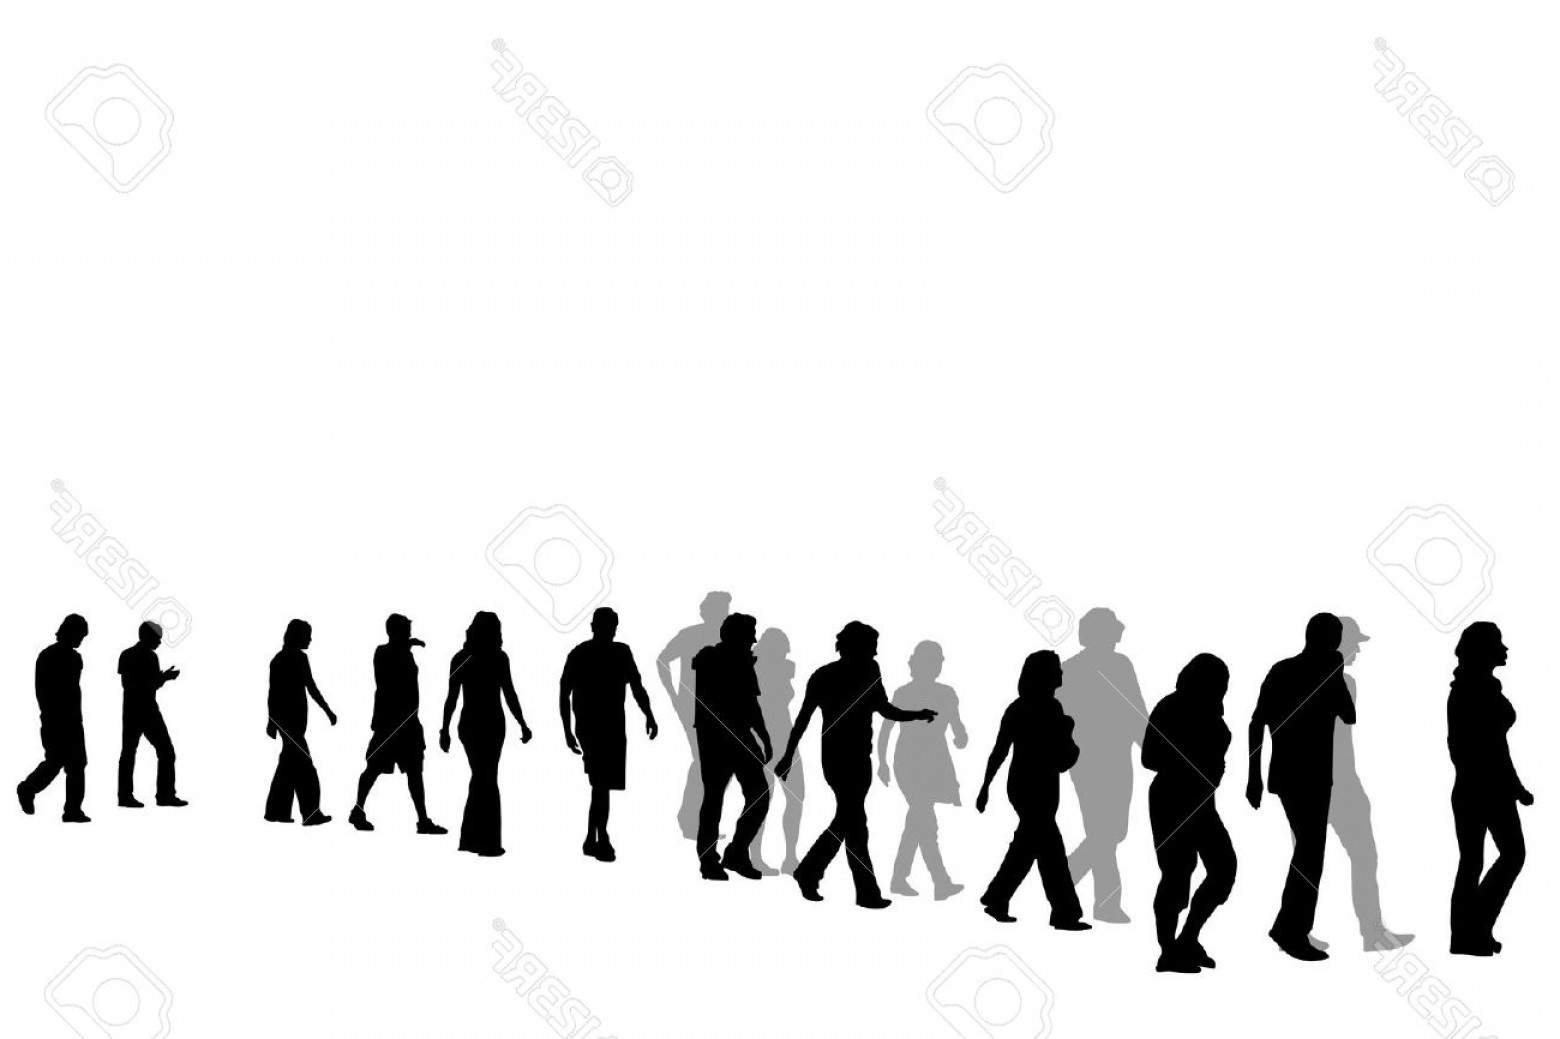 Vector People Free Clip Art: Crowd Of People Walking Clipart